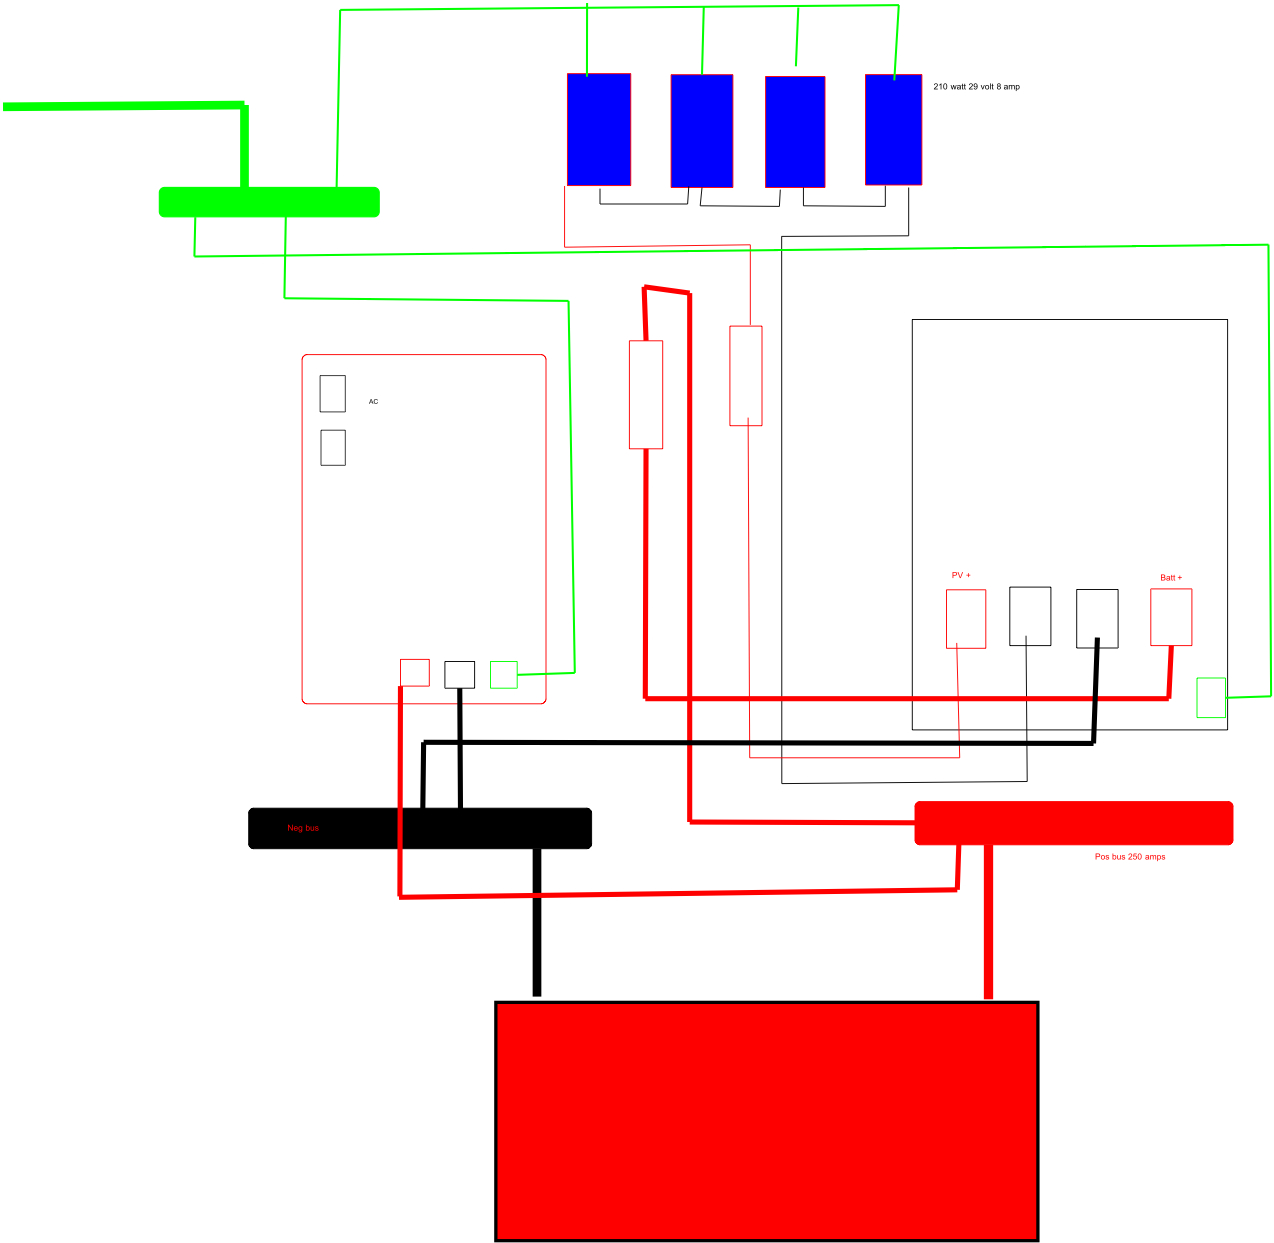 carmate trailer wiring diagram wiring diagram libraries 2013 carmate 100 solar heated and cooled over [ 1274 x 1243 Pixel ]